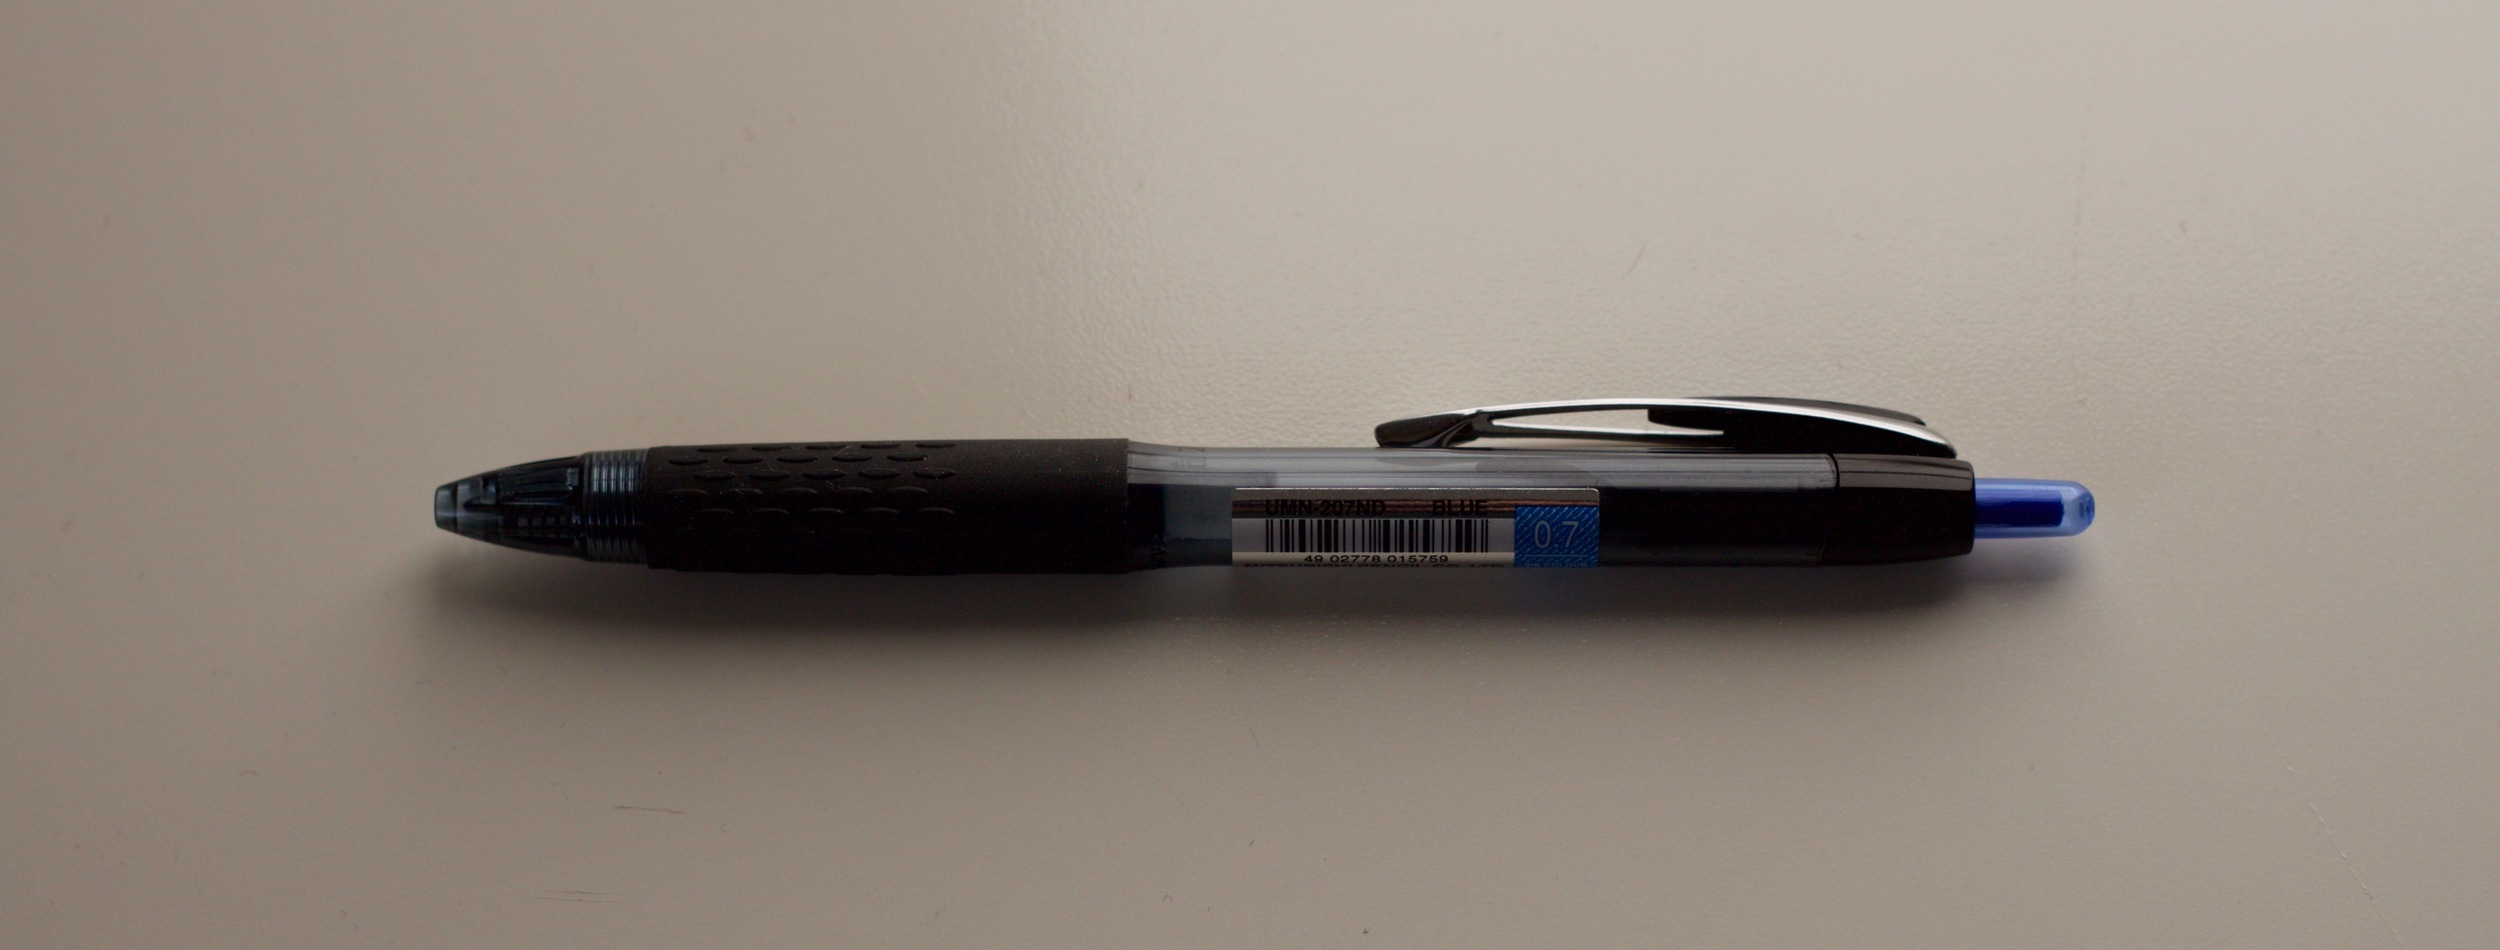 The sleek black 207 pen barrel